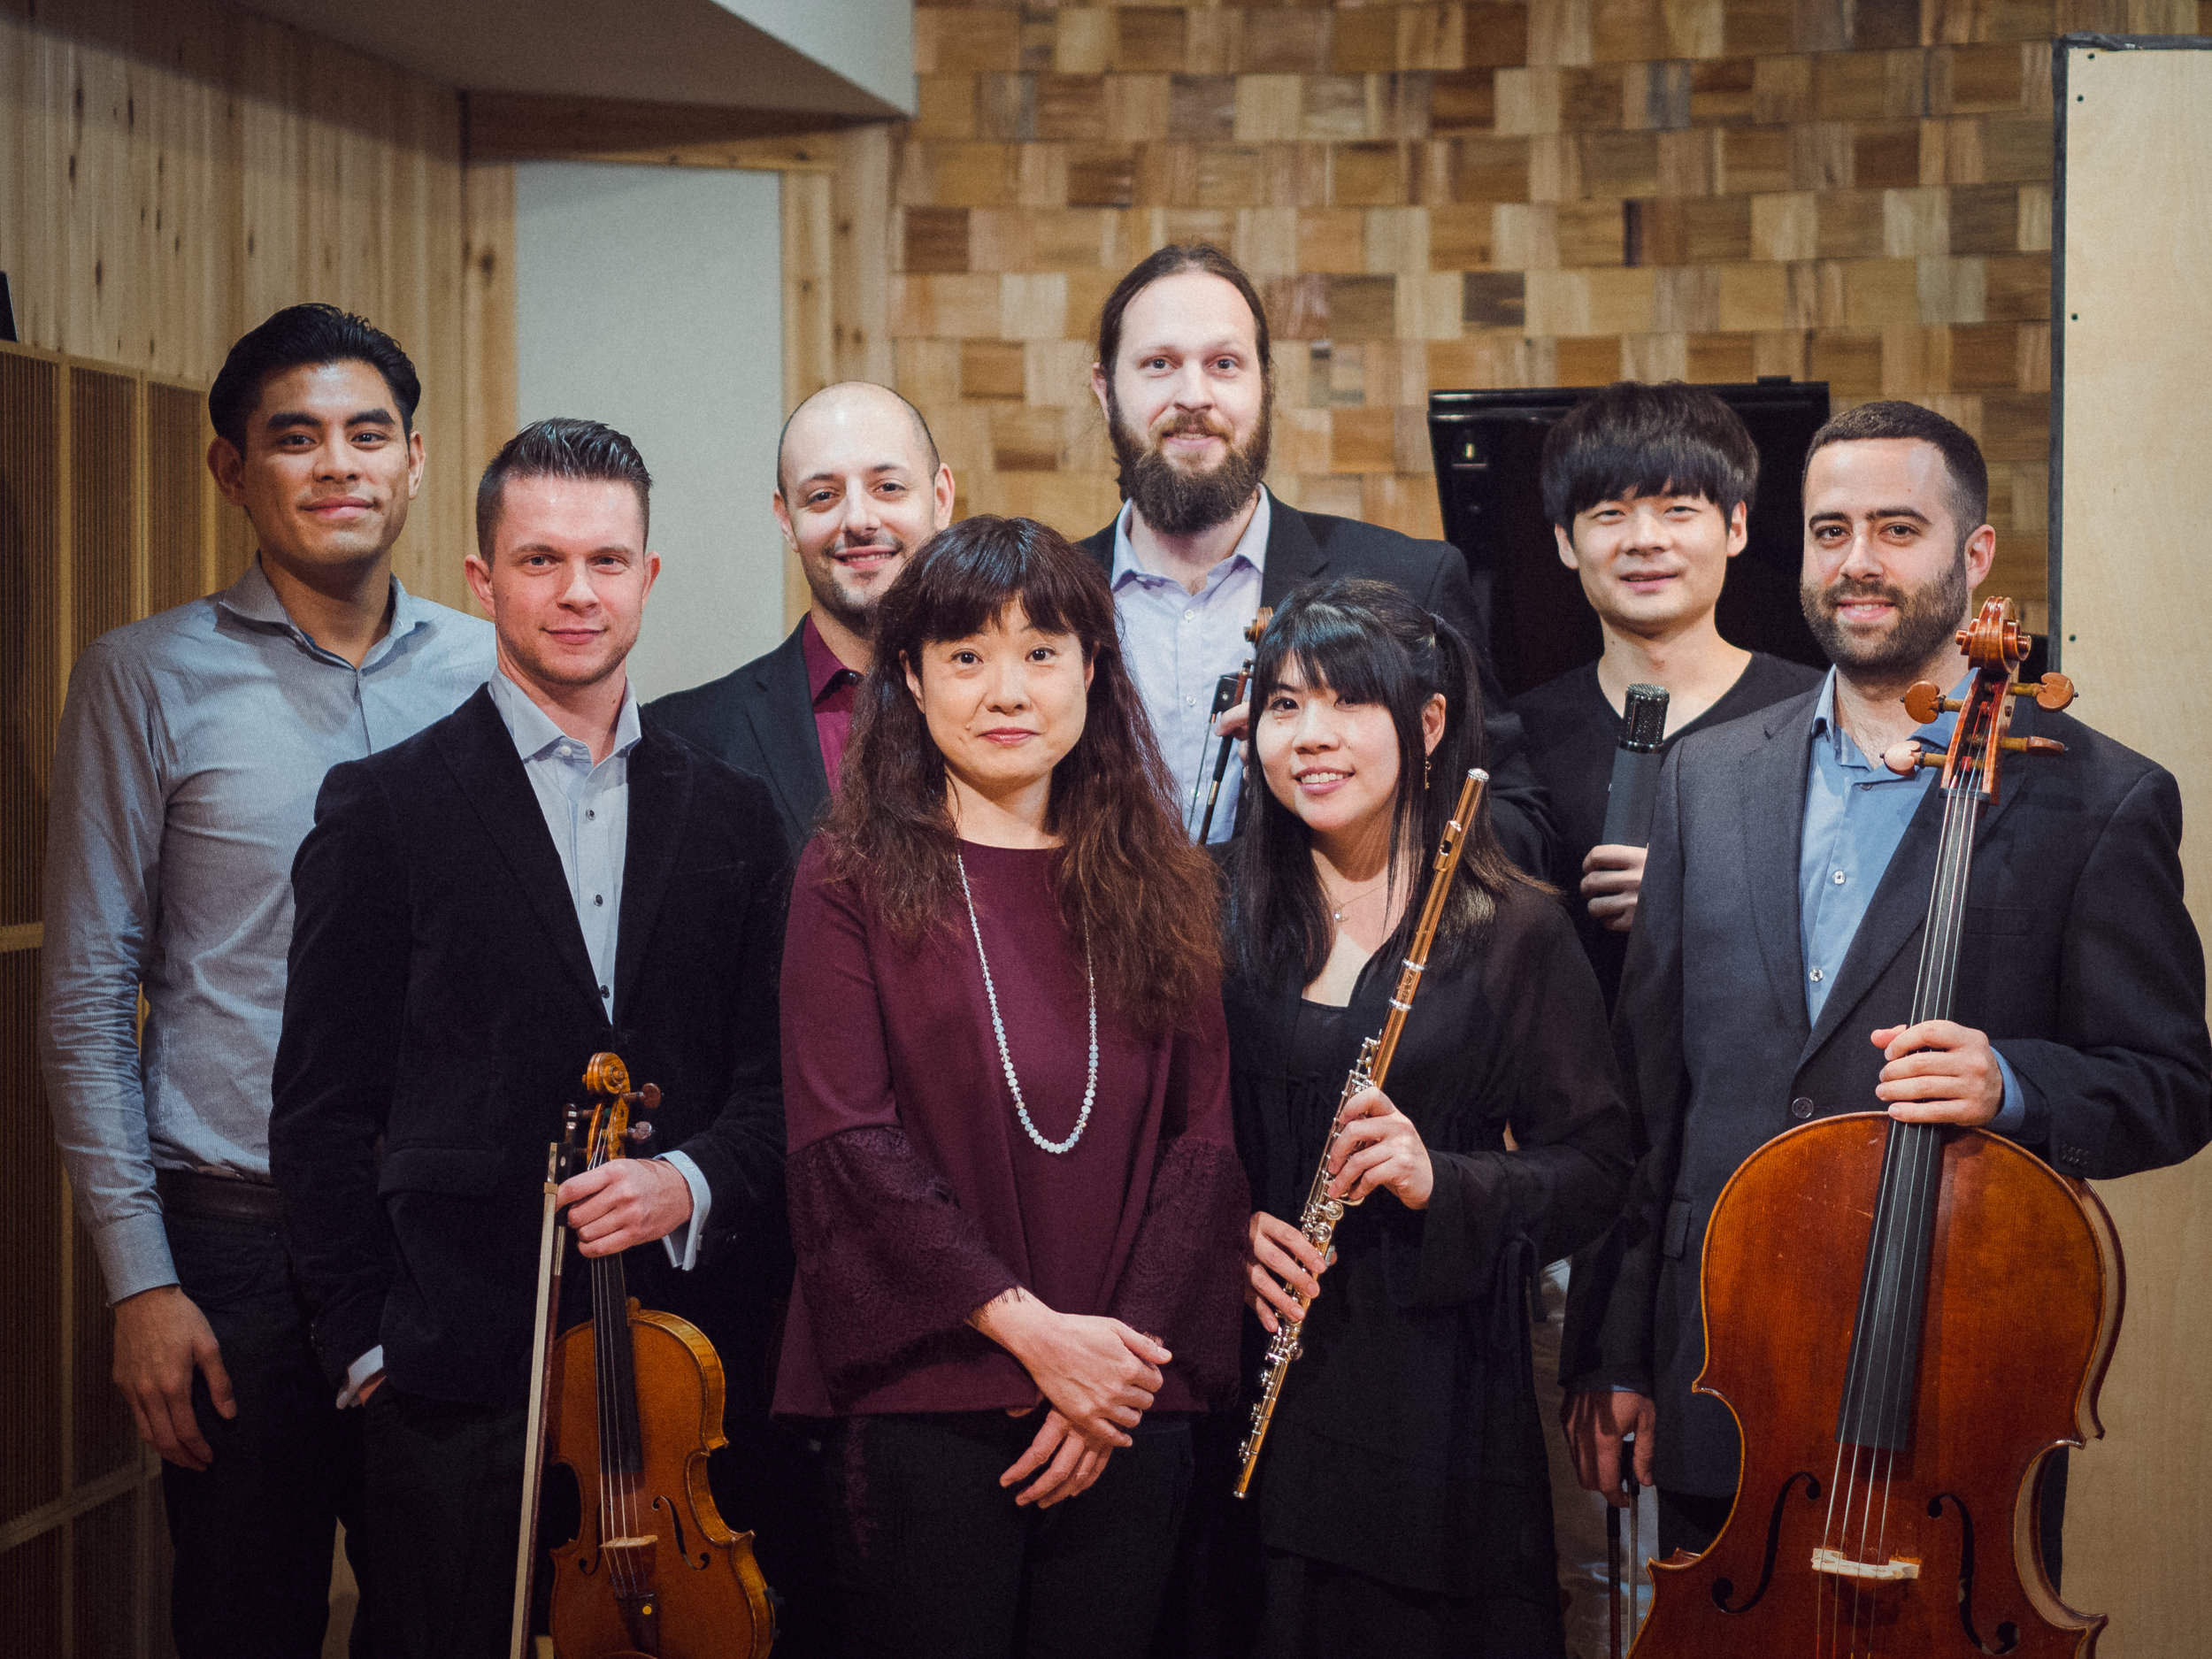 From Left to Right: Alexander Aniel (Director), Jacob Roege (Second Violinist), Christopher Ferrara (First Violinist), Saori Kobayashi (Composer), Stanley Beckwith (Viola), Maho Azuma (Flute), Wei Wang (Studio Engineer), Chad Schwartz (Cello)